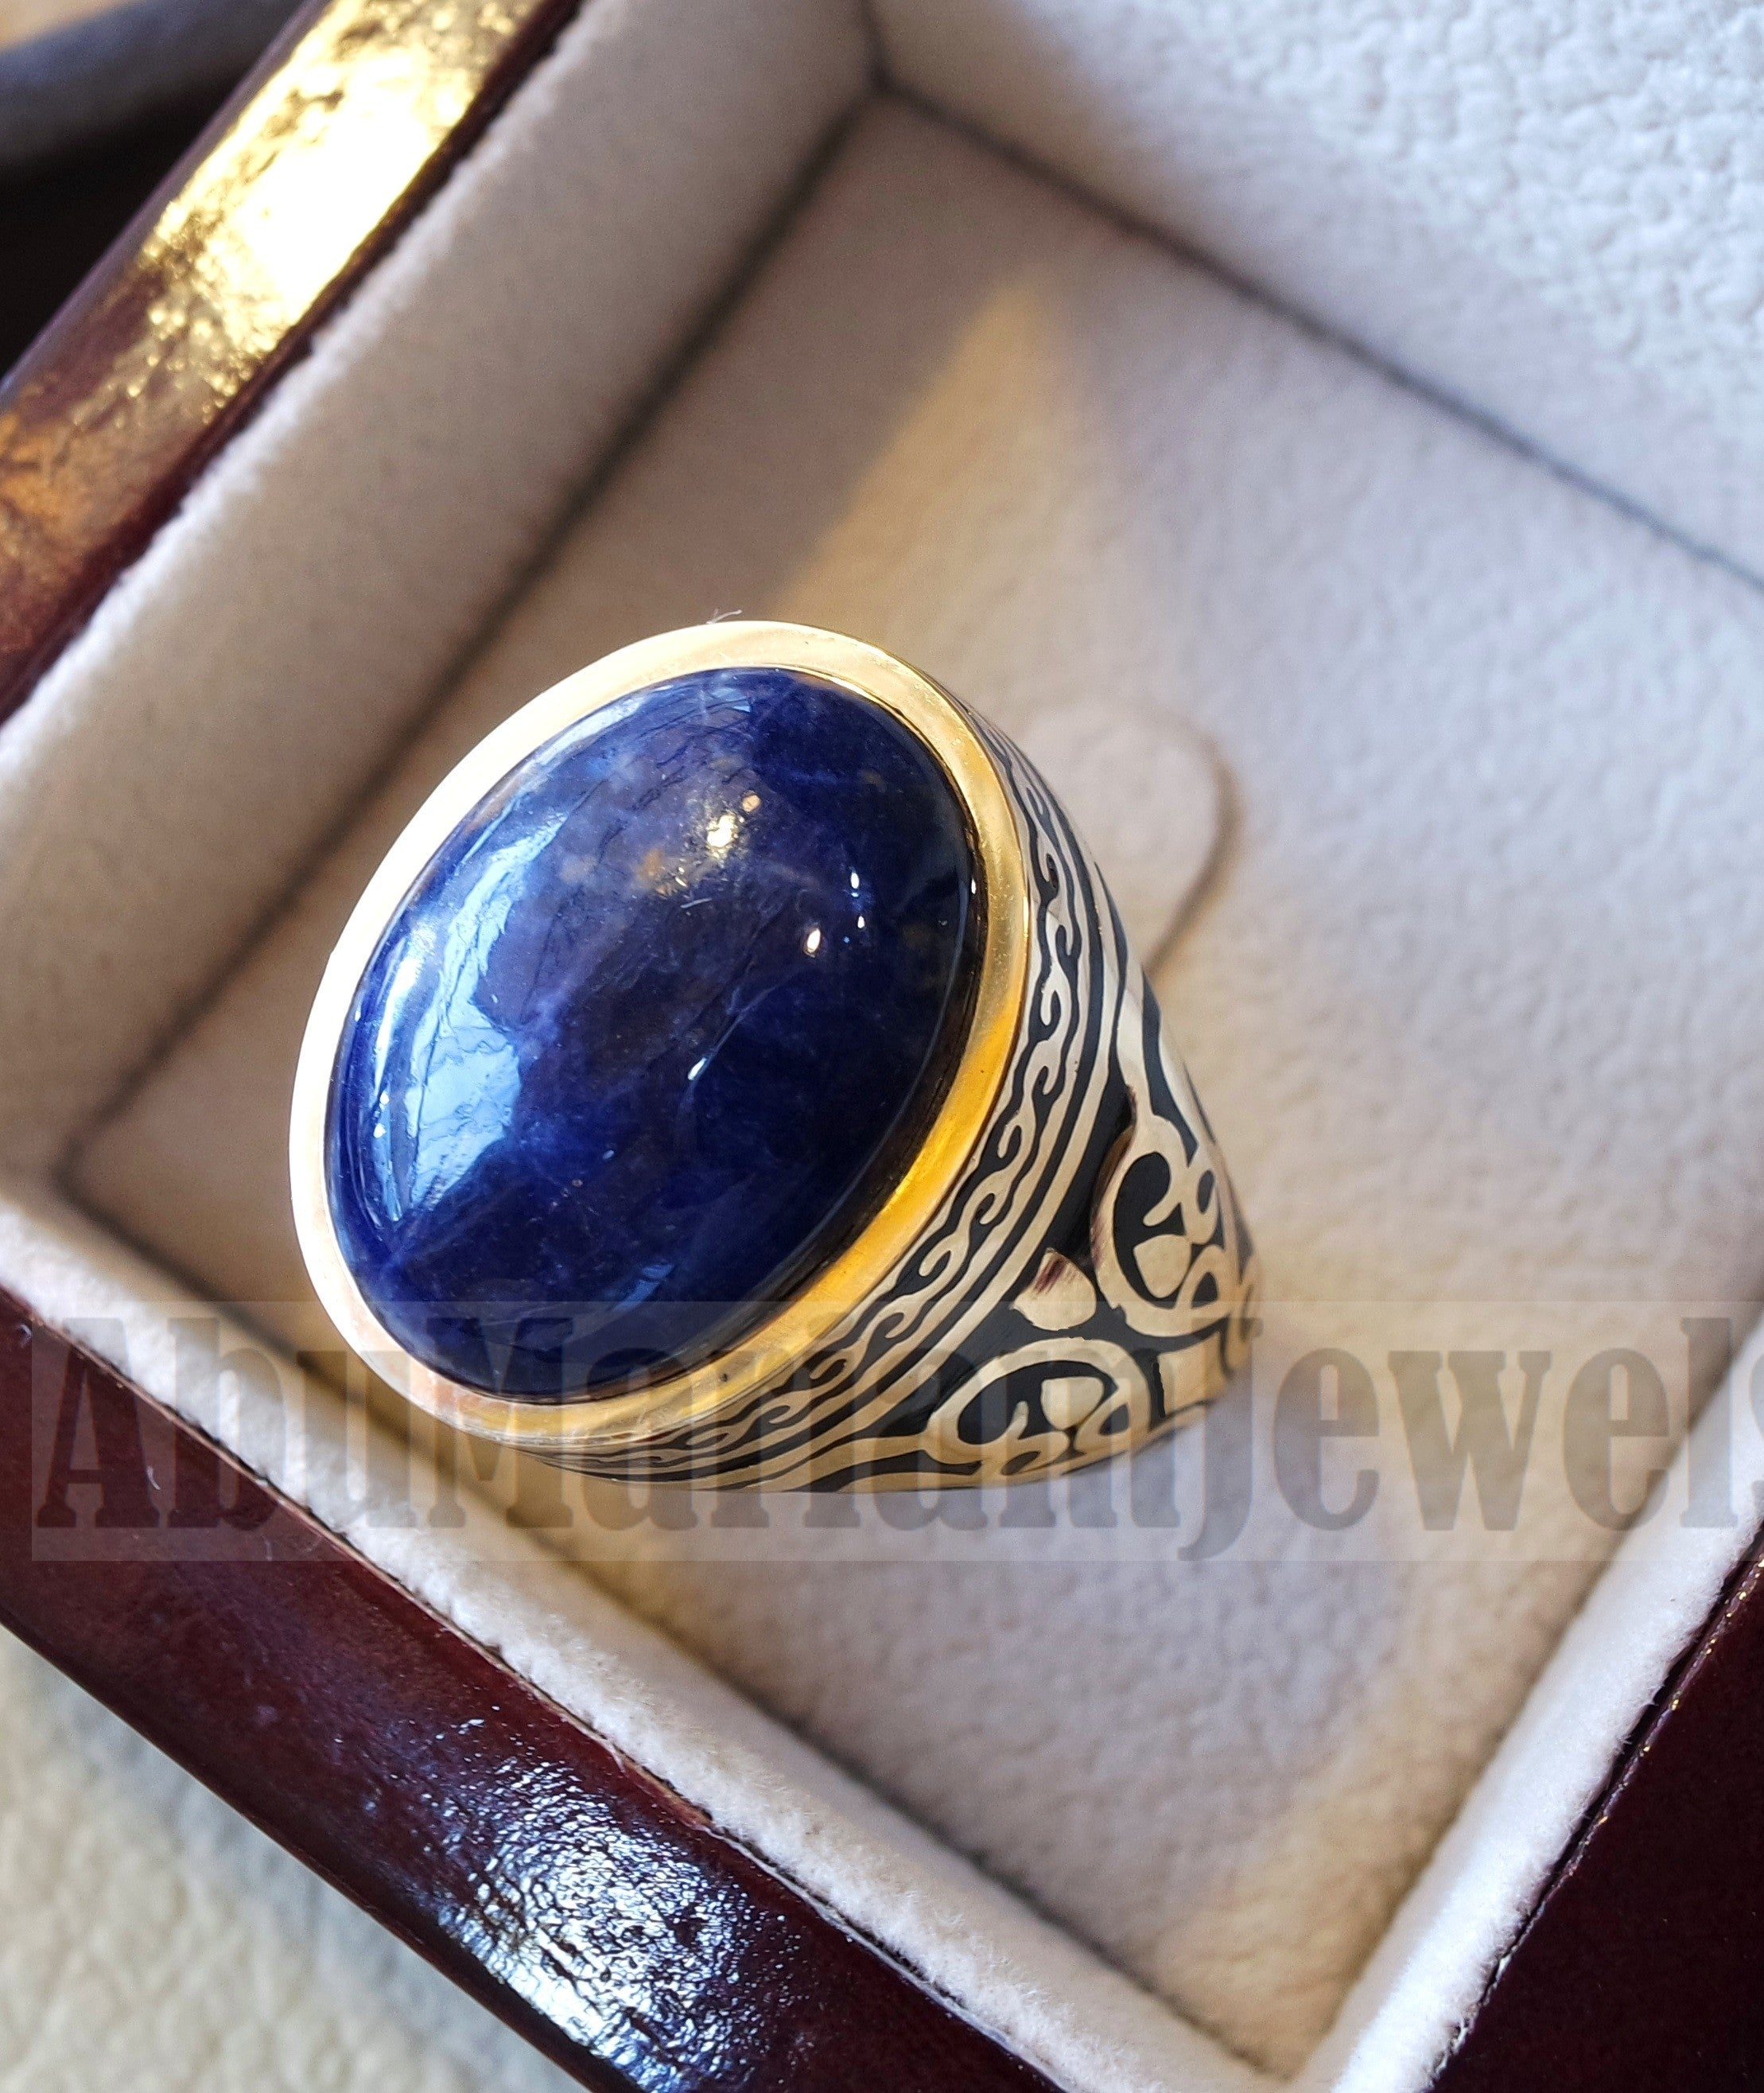 18k yellow gold men ring sodalite cabochon high quality natural stone all sizes Ottoman signet style fine jewelry fast shipping